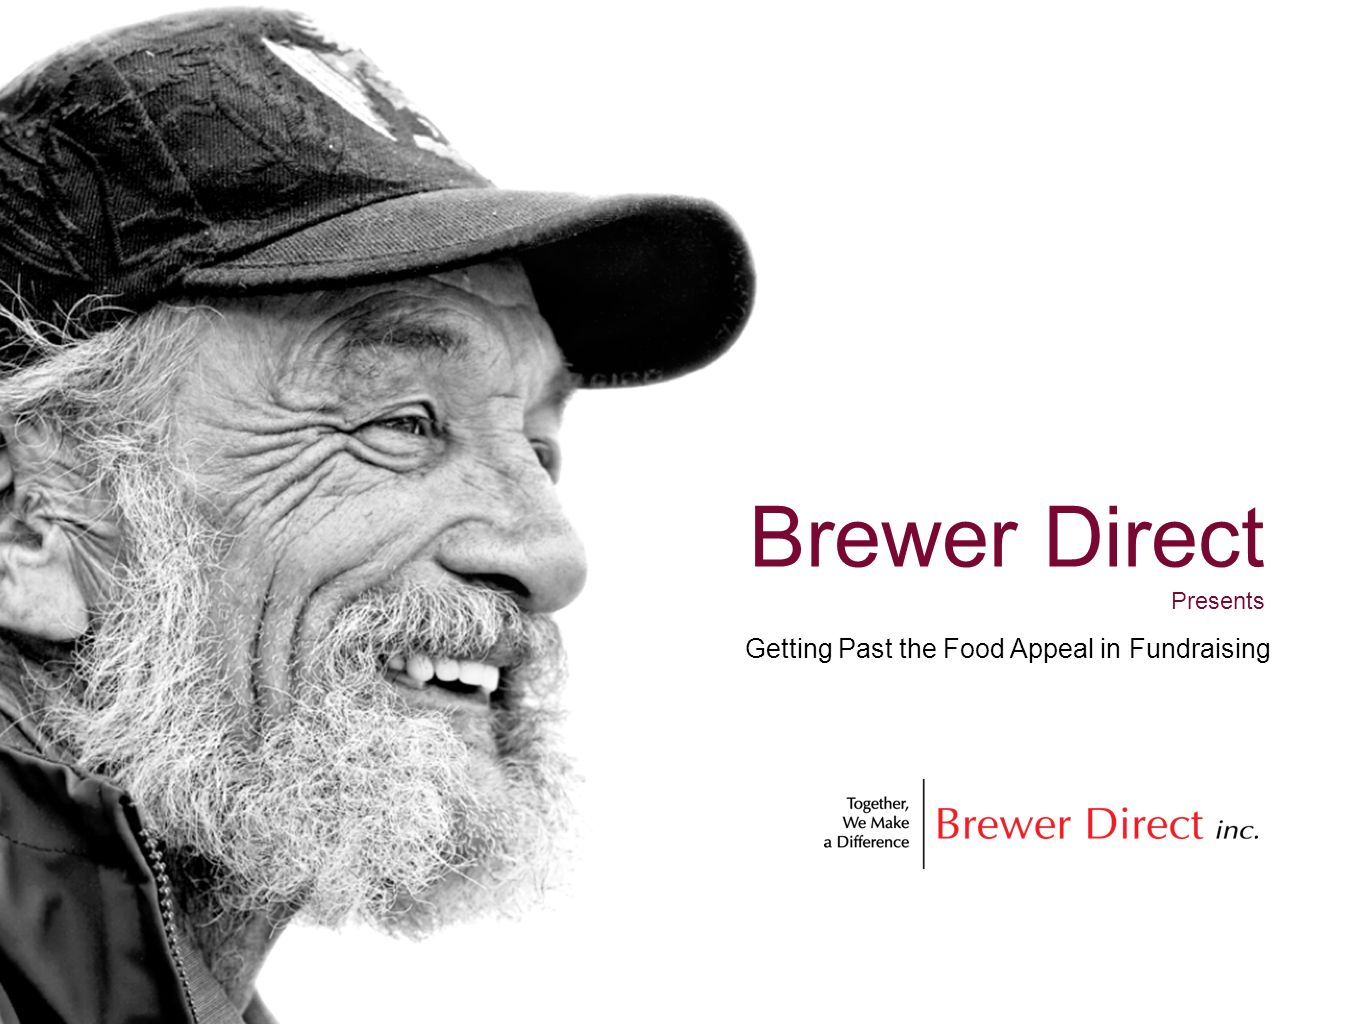 Brewer Direct Presents Getting Past the Food Appeal in Fundraising